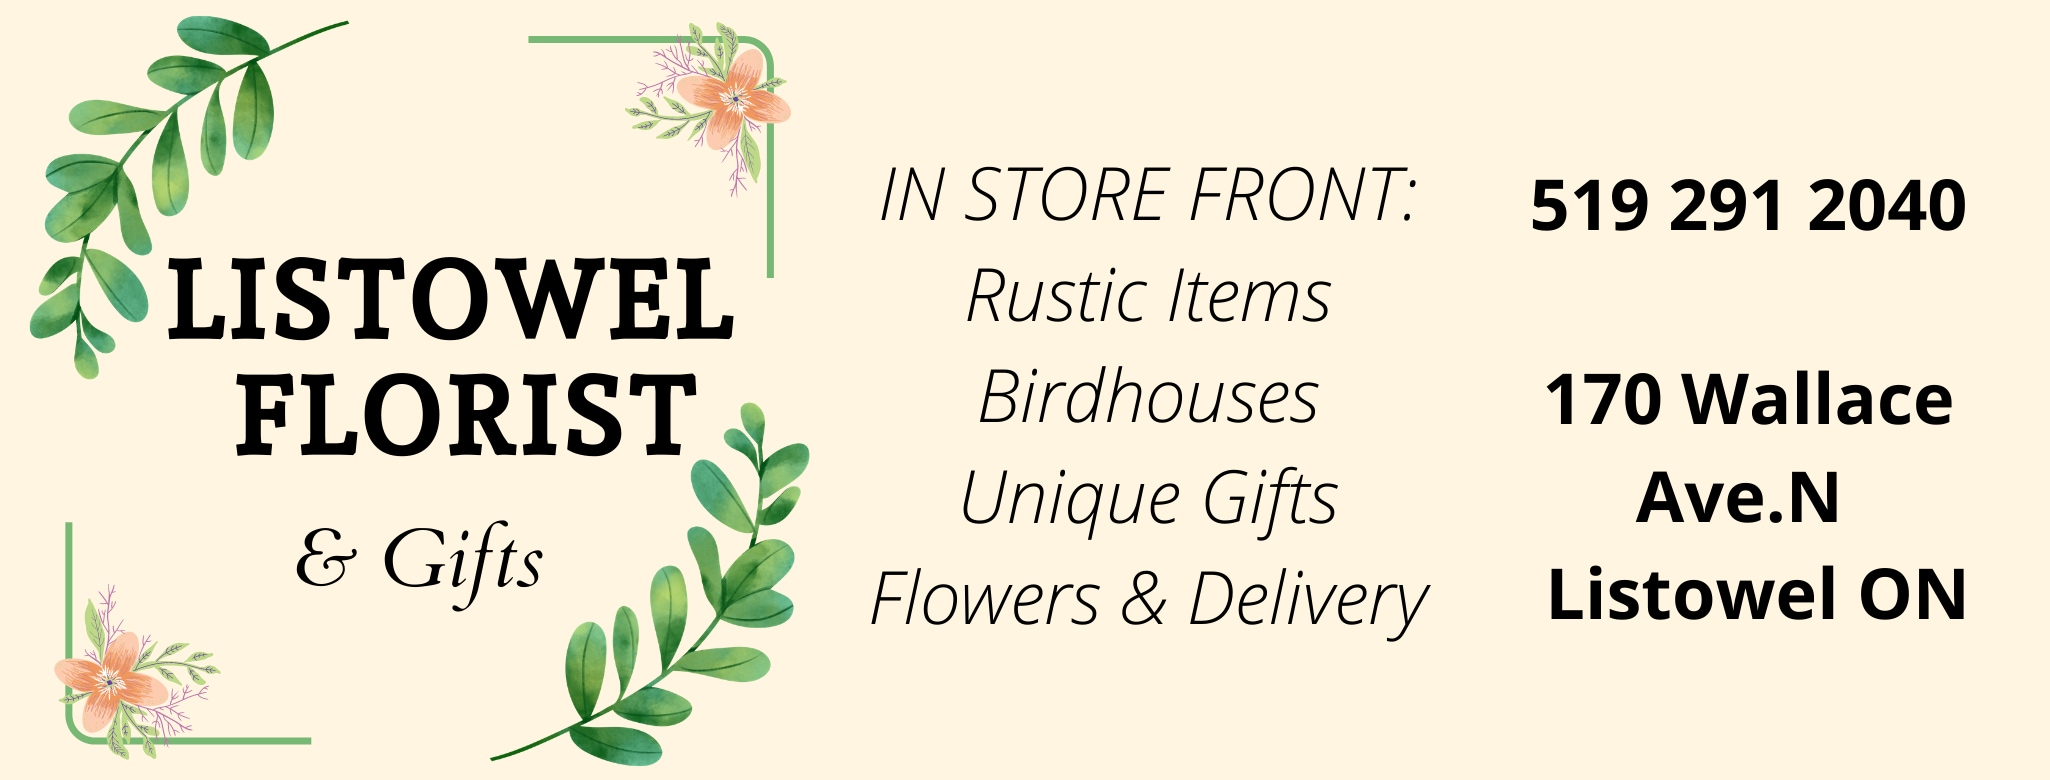 Flower Delivery to Listowel by Listowel Florist